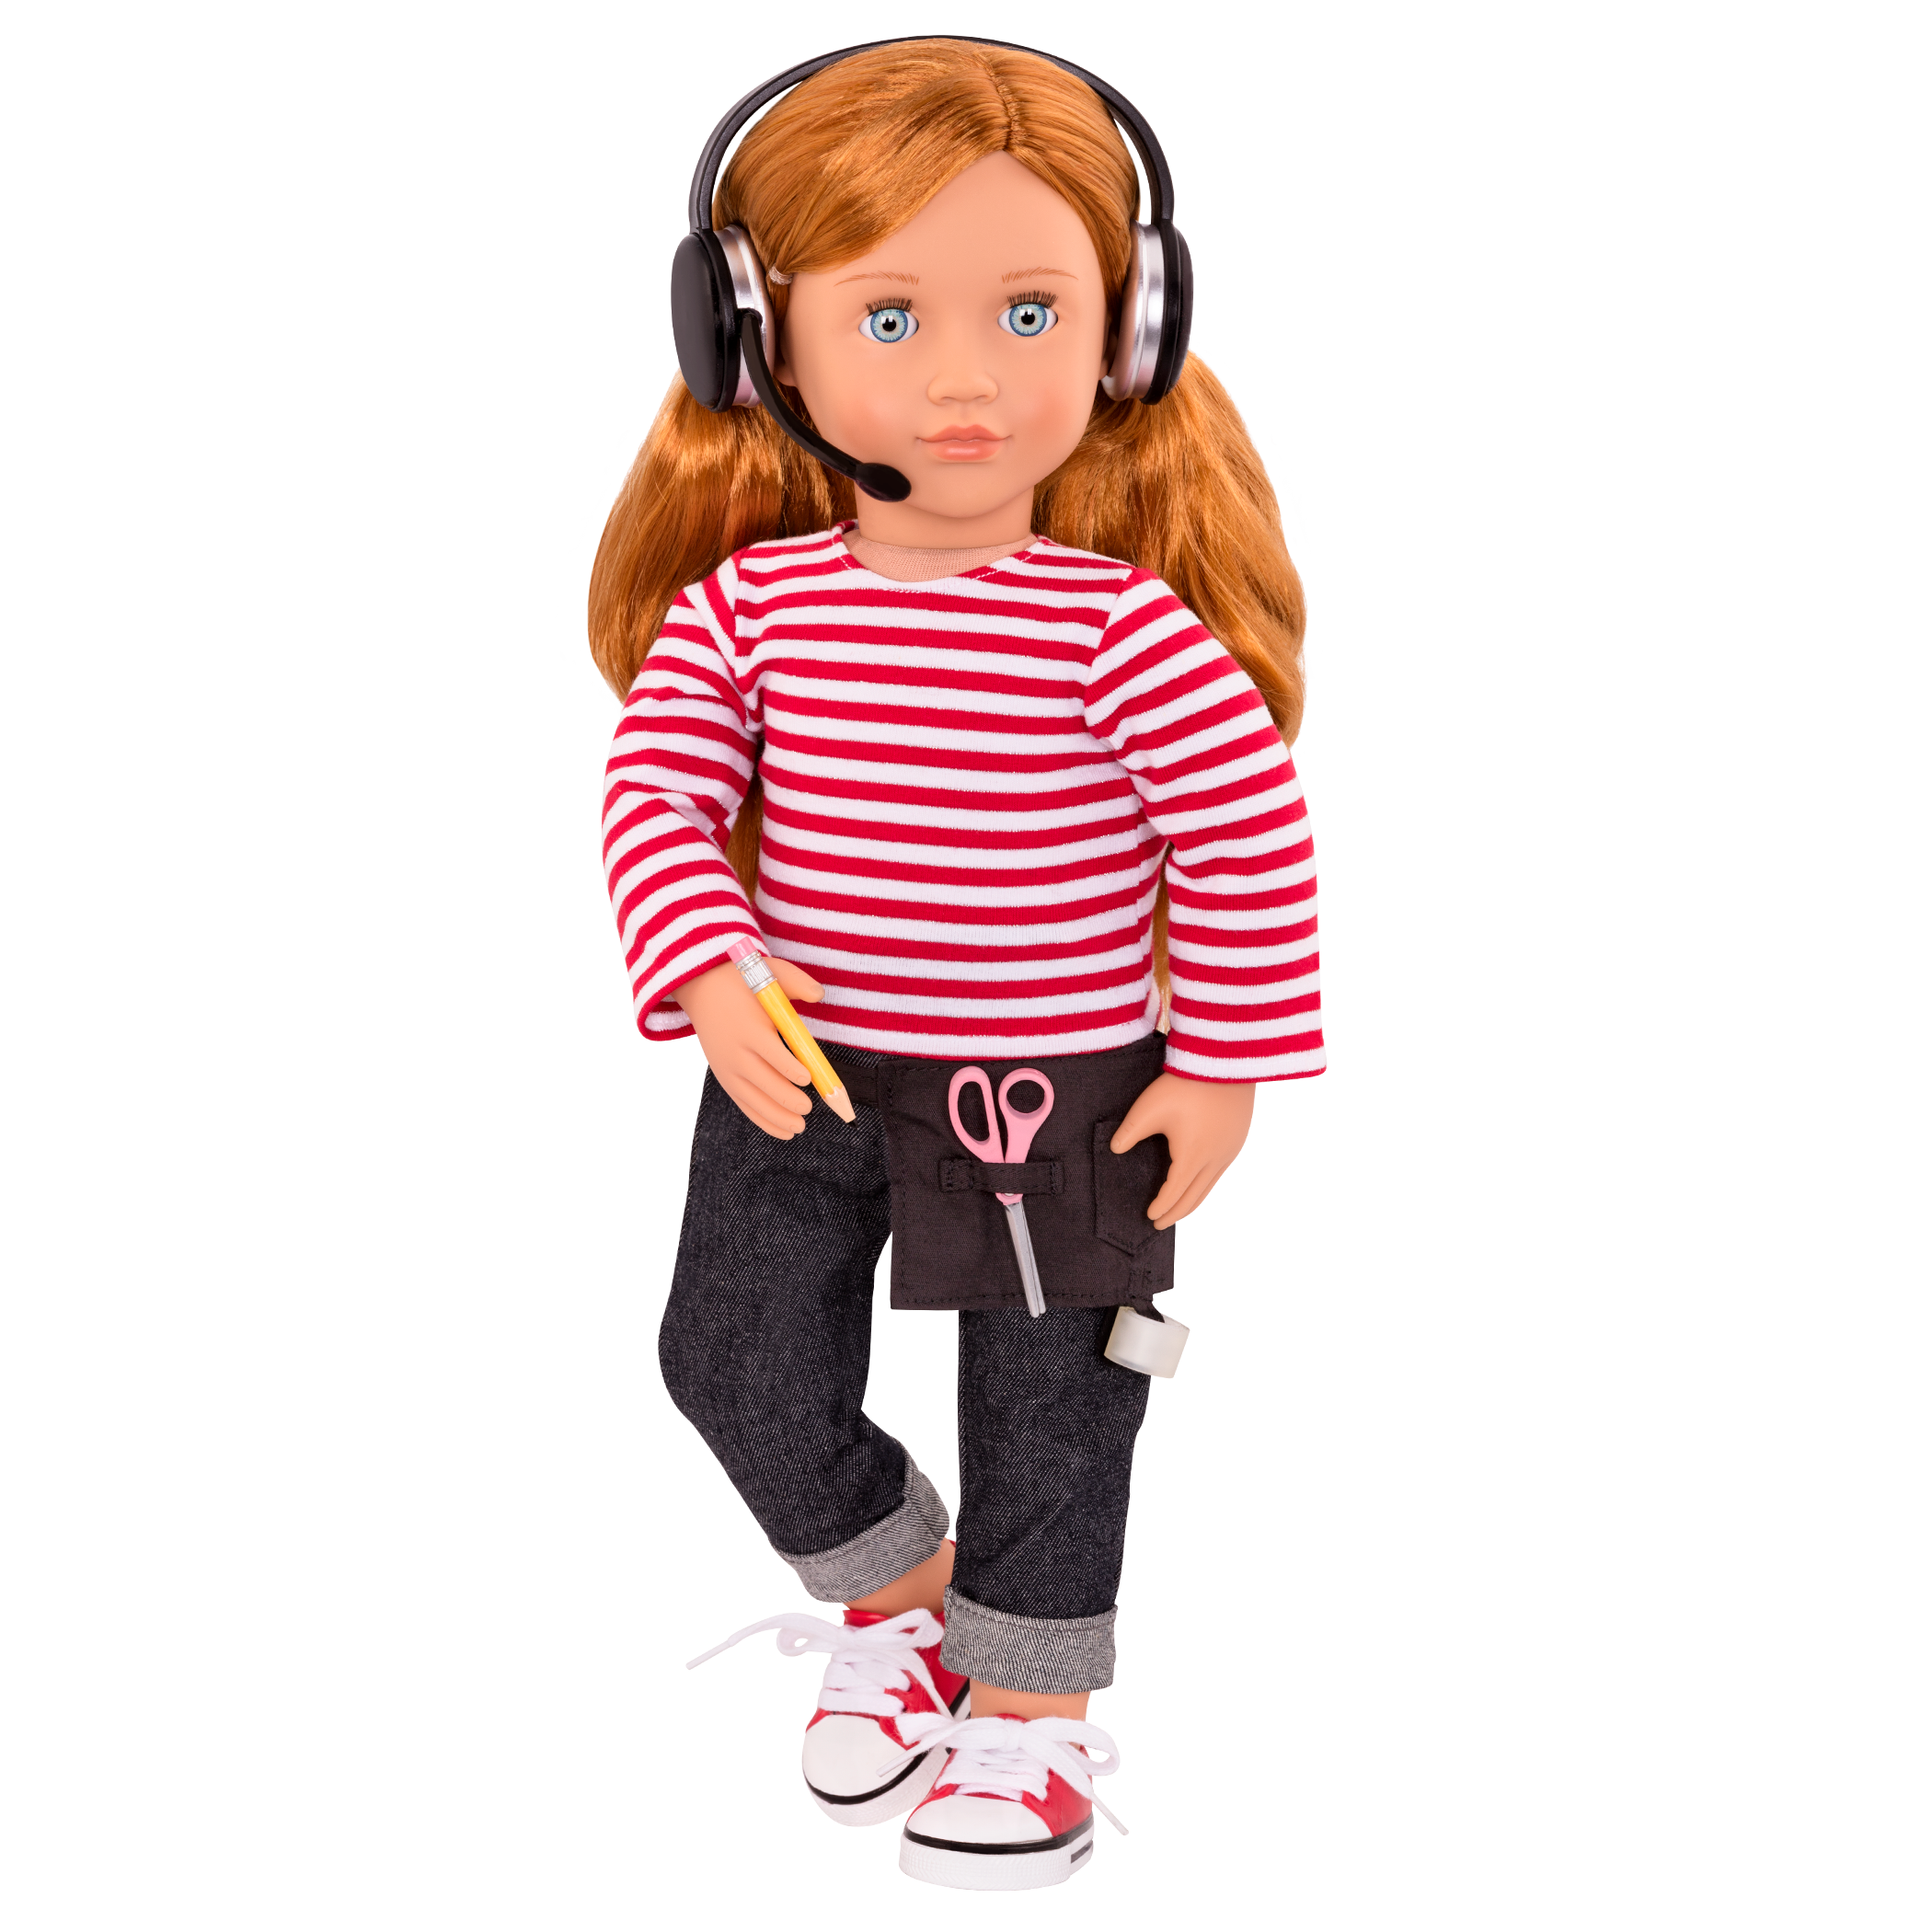 Mienna wearing outfit and headset